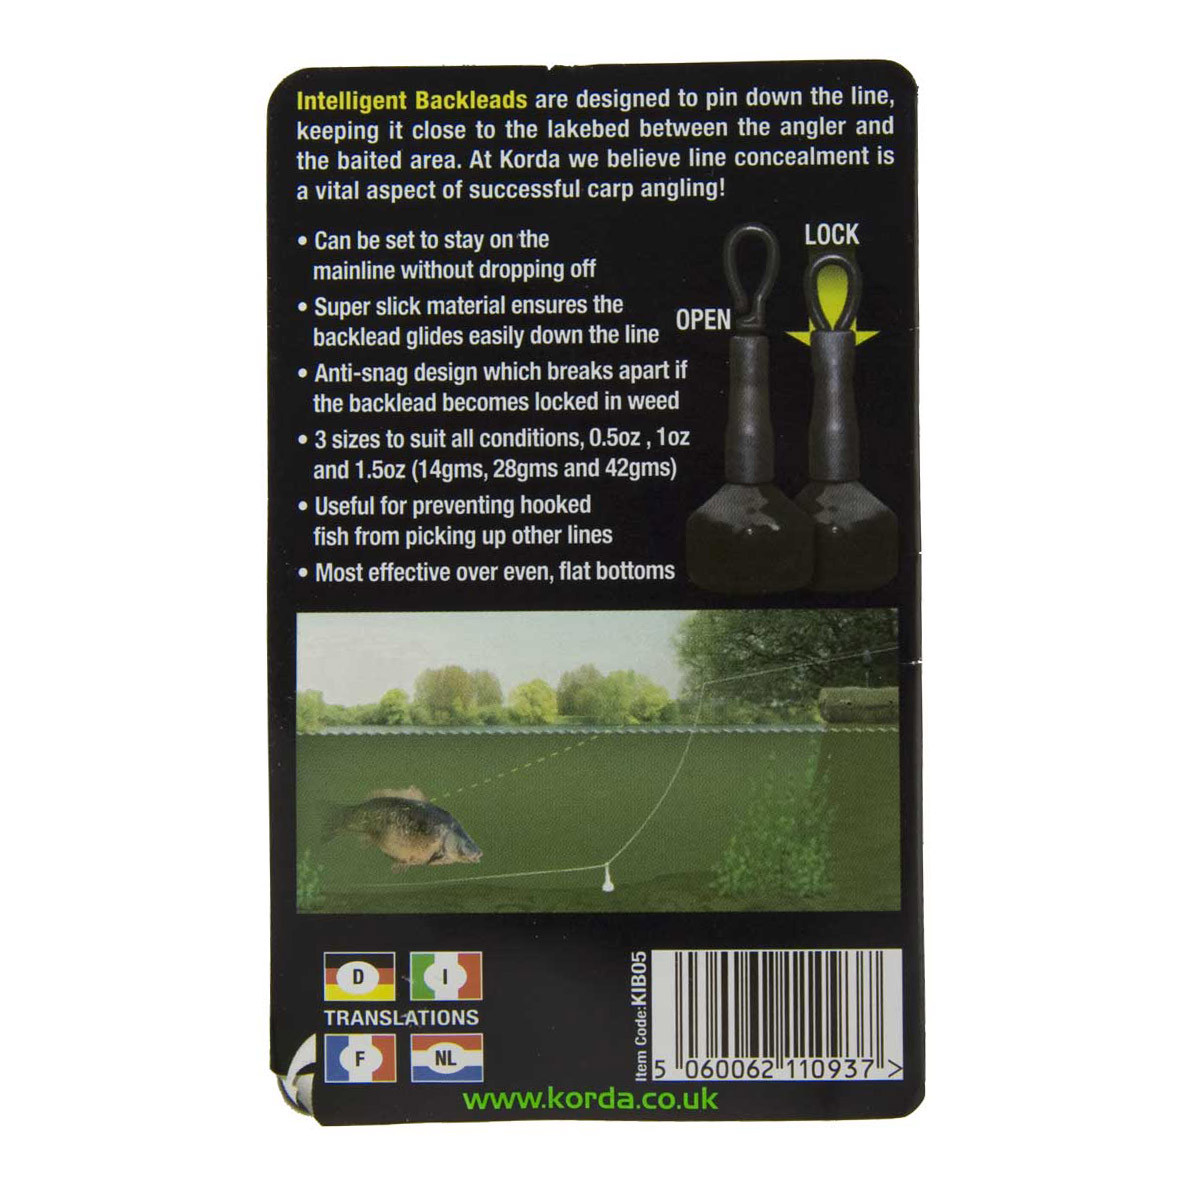 Korda Intelligent Backlead